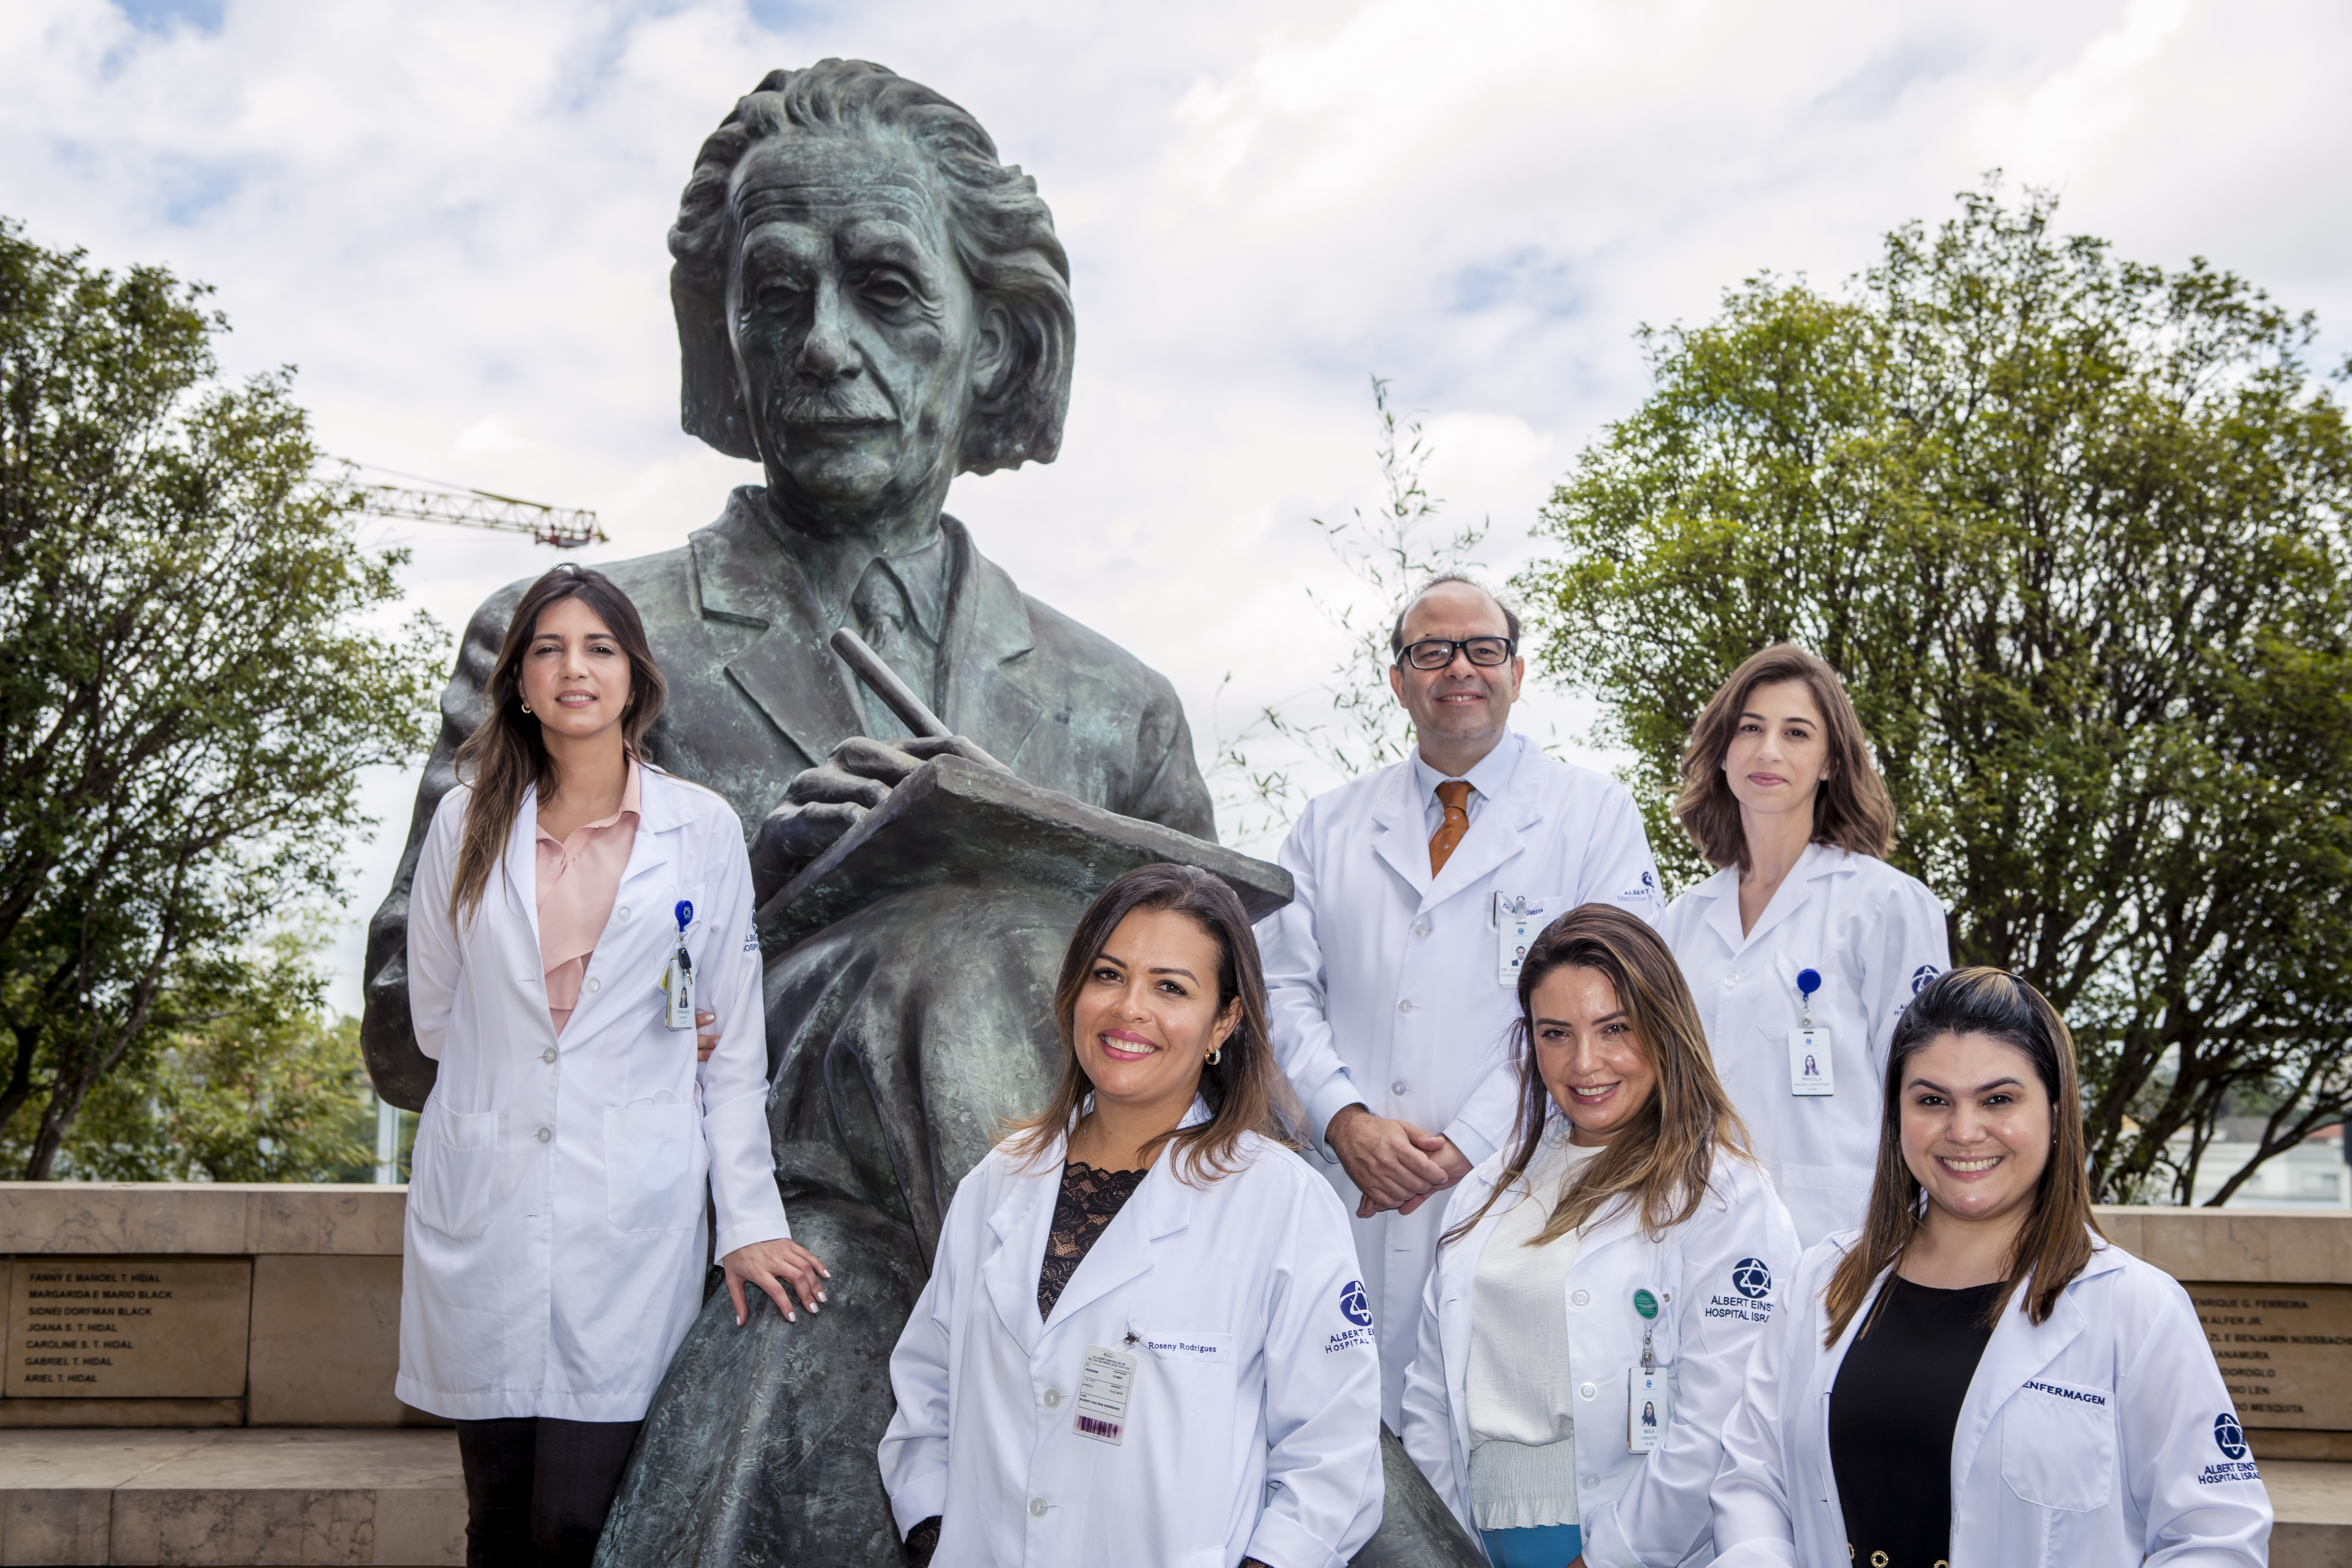 Hospital Israelita Albert Einstein conquista prêmio Univants